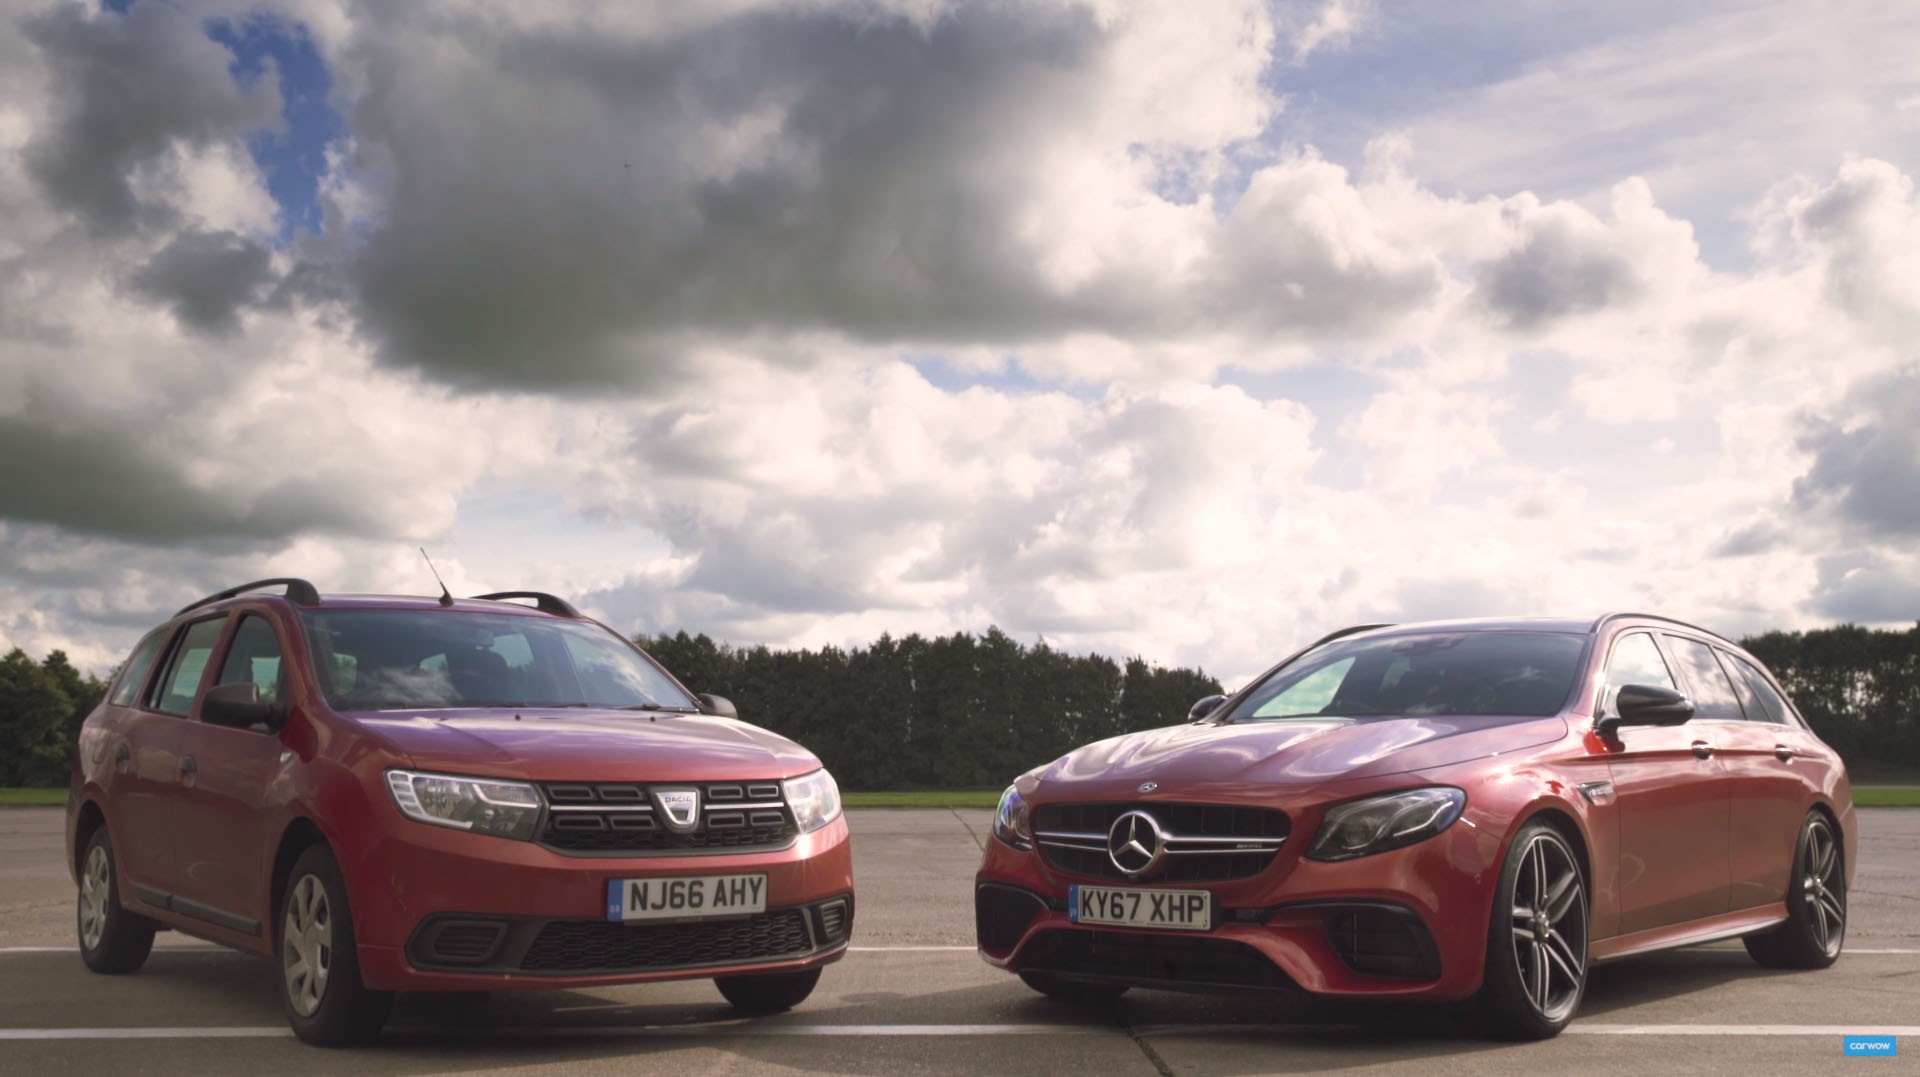 Mercedes amg e63 s vs dacia logan 10x the price how for How much is a mercedes benz amg